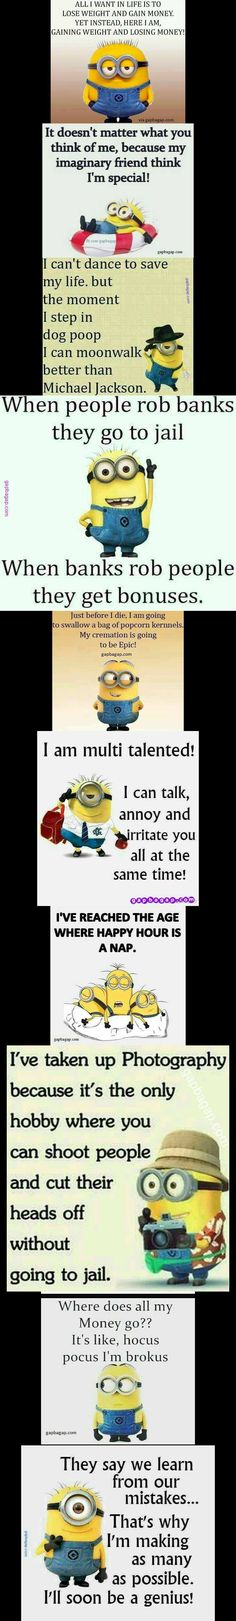 Top 10 Funniest Memes By The #Minions